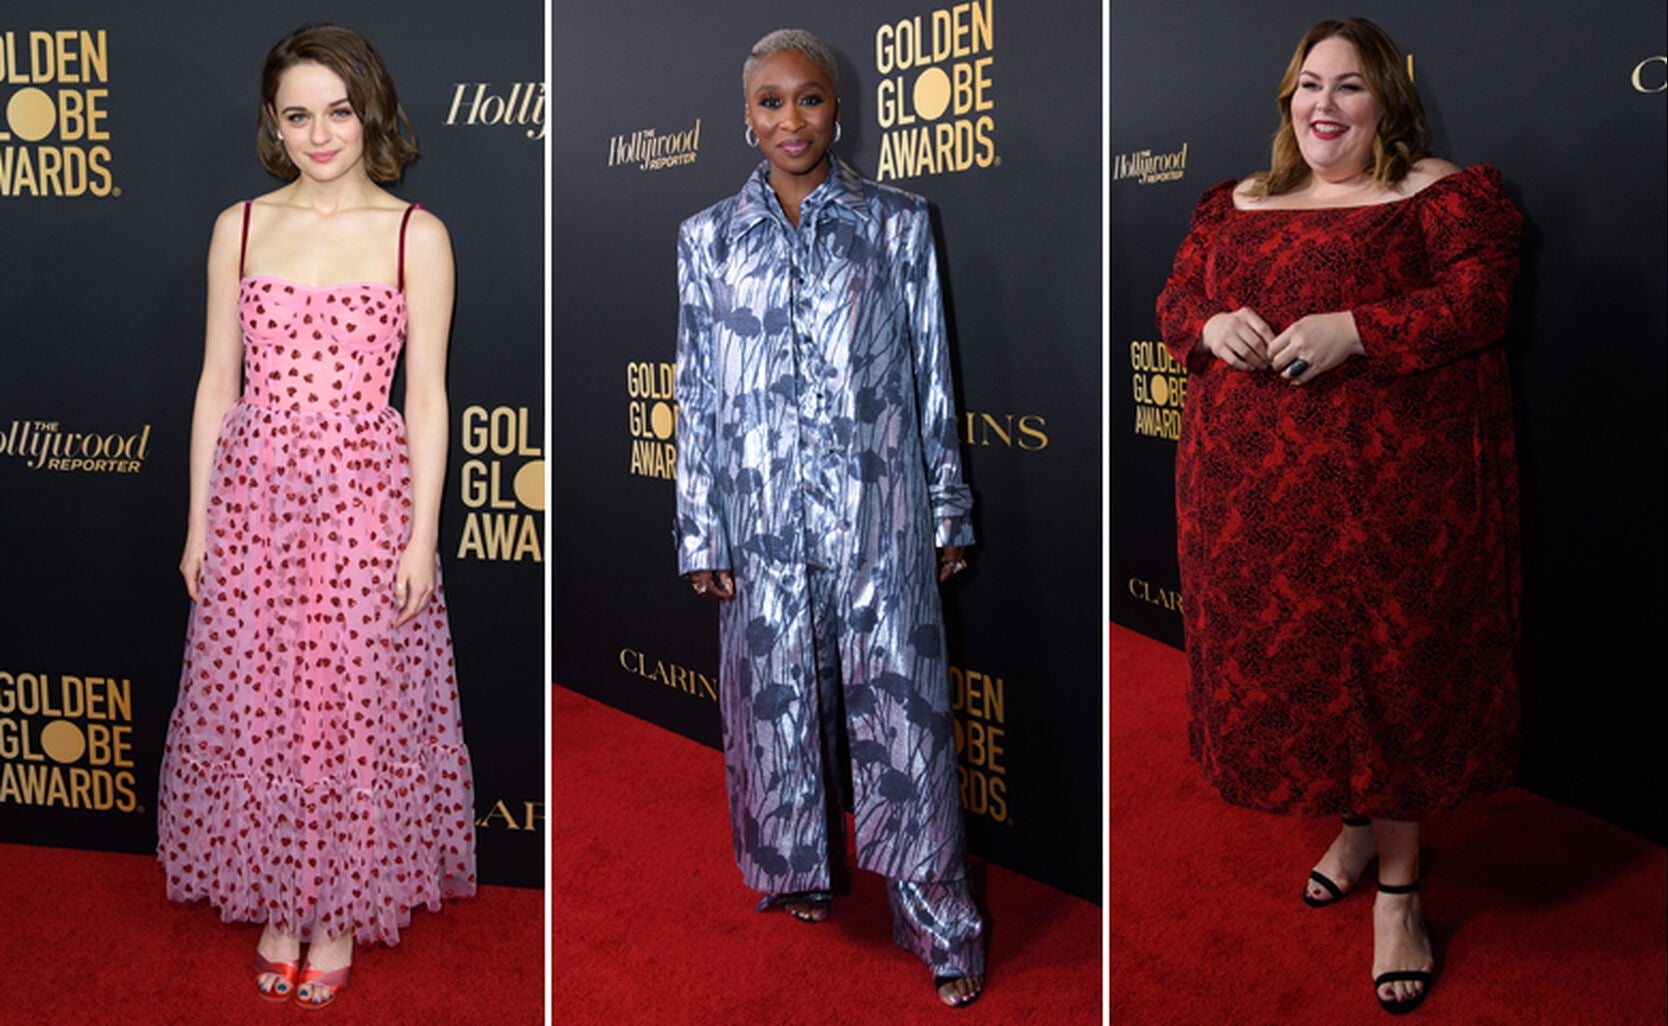 Joey King, Cynthia Erivo, Chrissy Metz